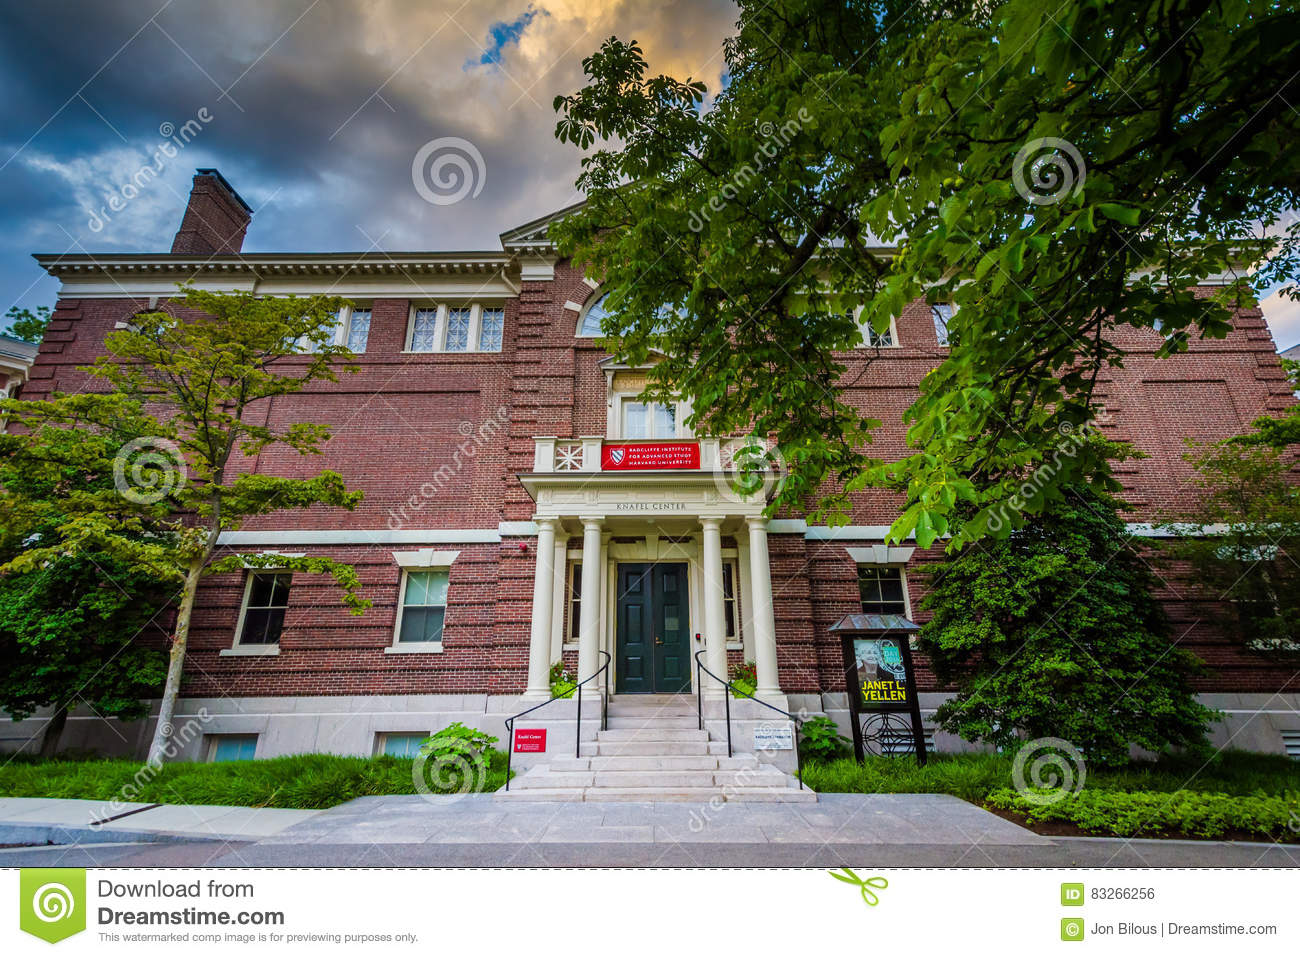 The Knafel Center at the Radcliffe Institute for Advanced Study